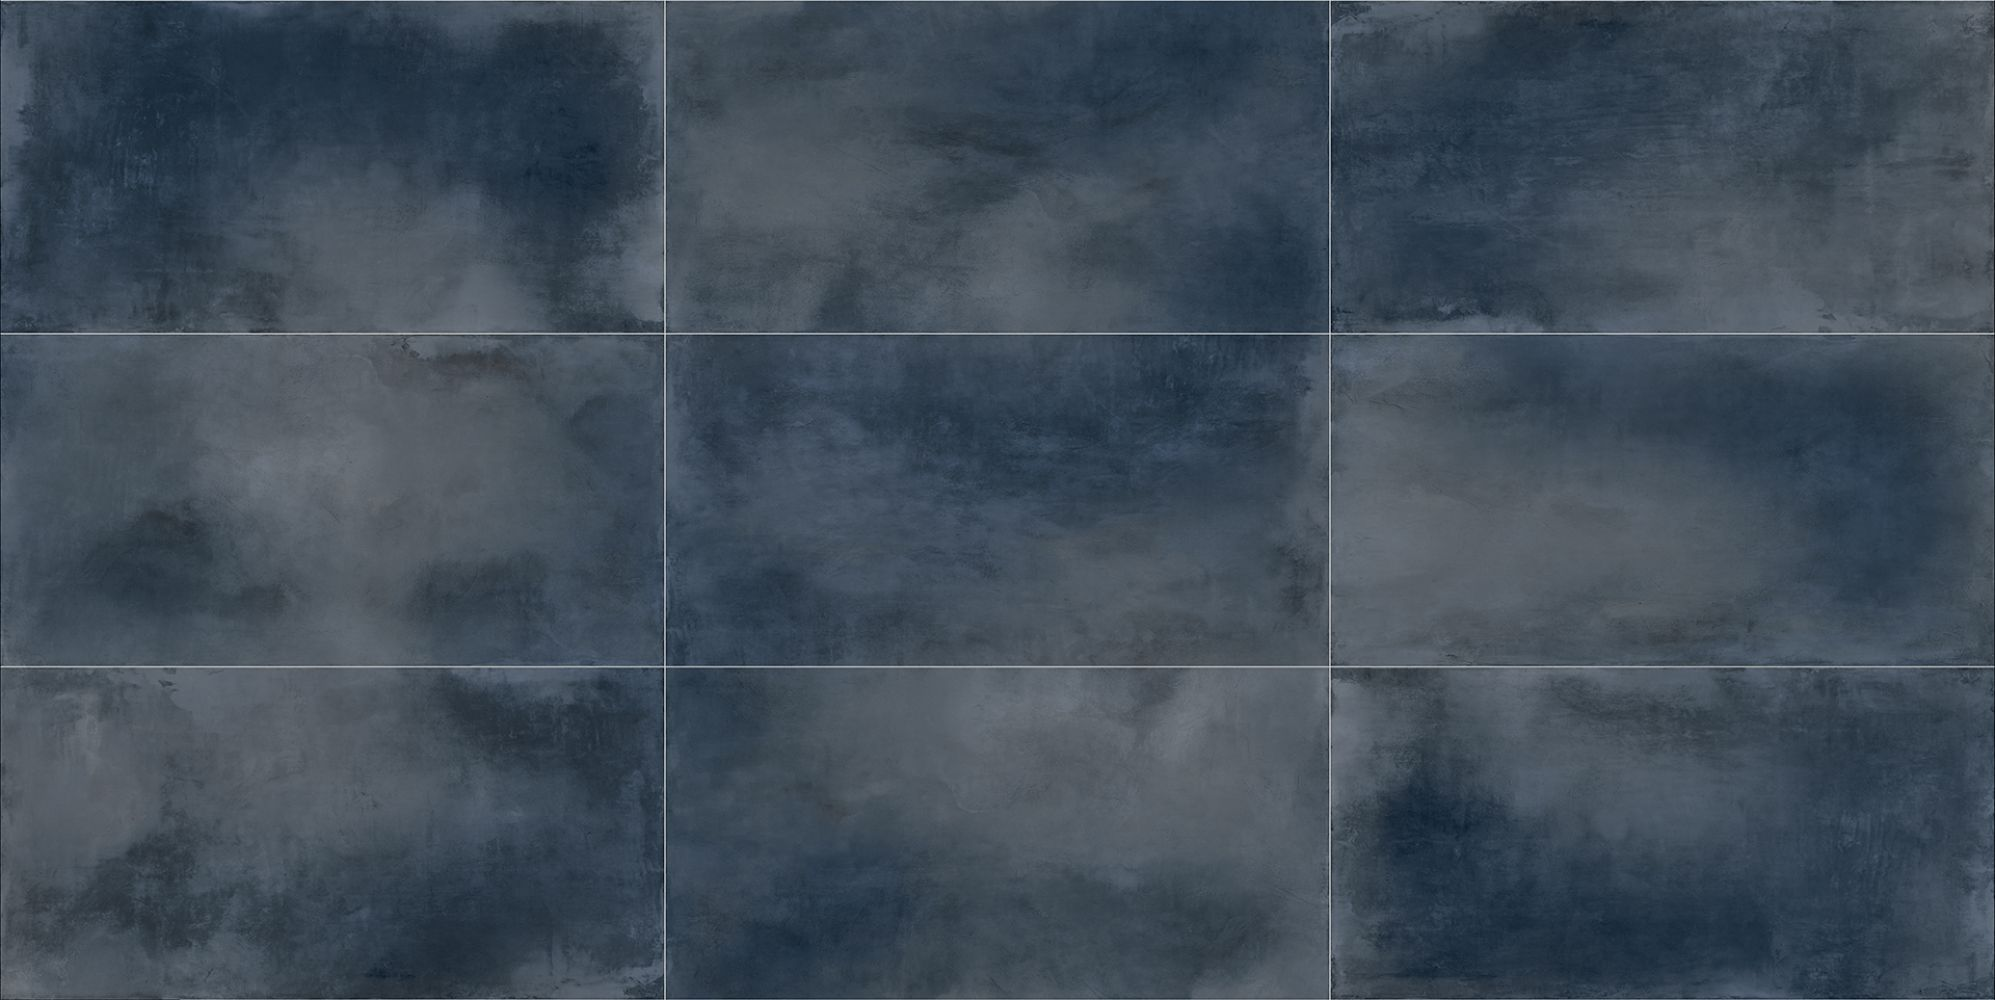 Industrial Blue 60x120R10 A - (9 facce - 9 faces)